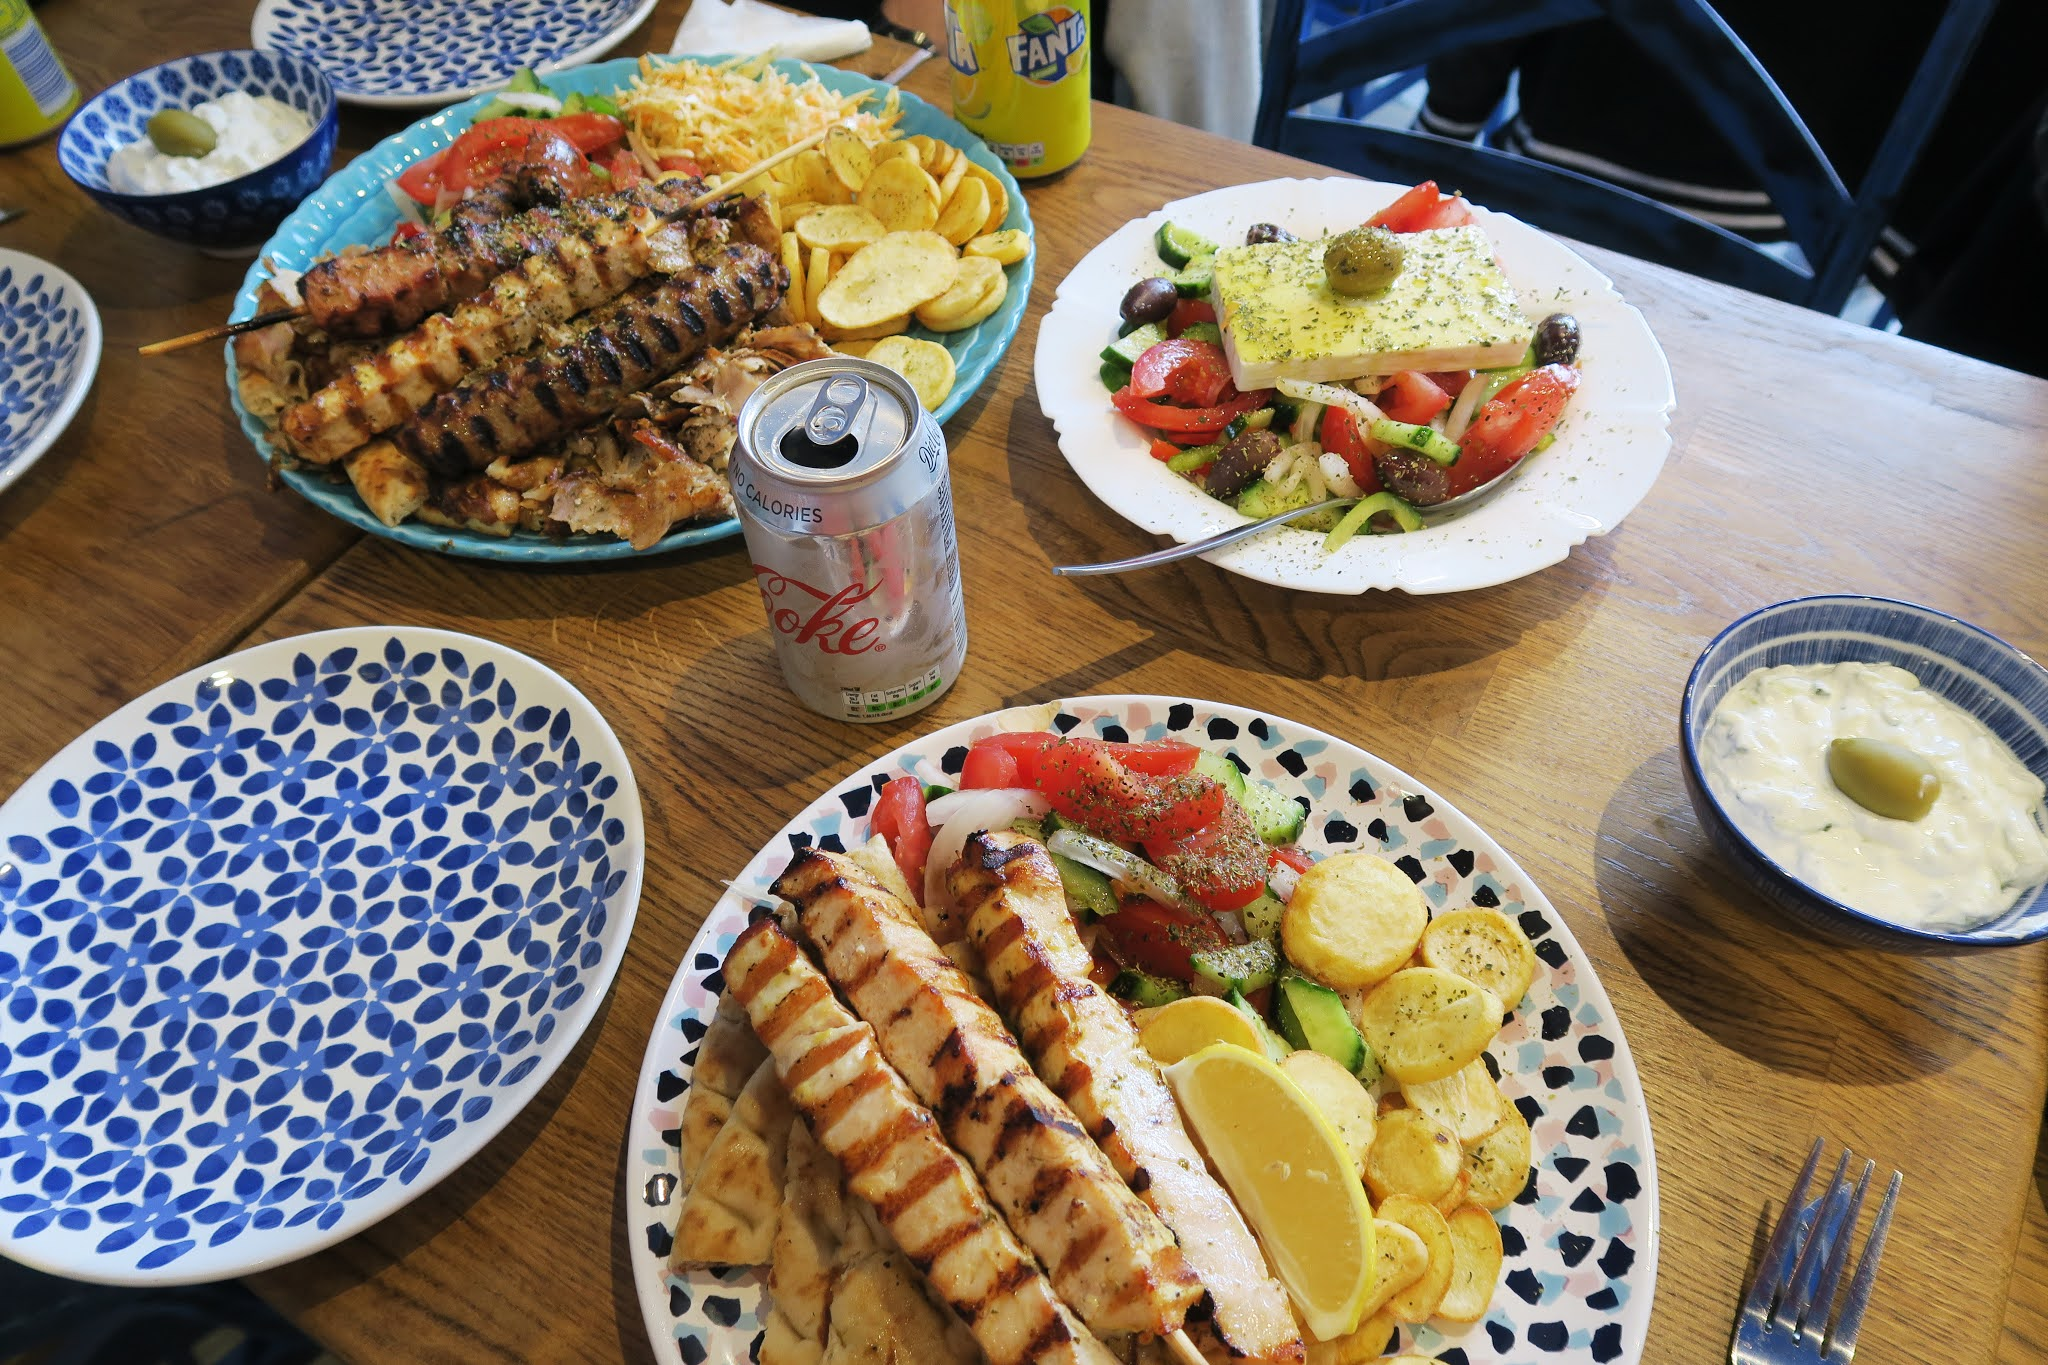 A plate of Chicken Souvlaki, a mixed grill,  a bowl of salad, and a bowl of Tzatziki at Mr Souvlaki Restaurant Stourbridge